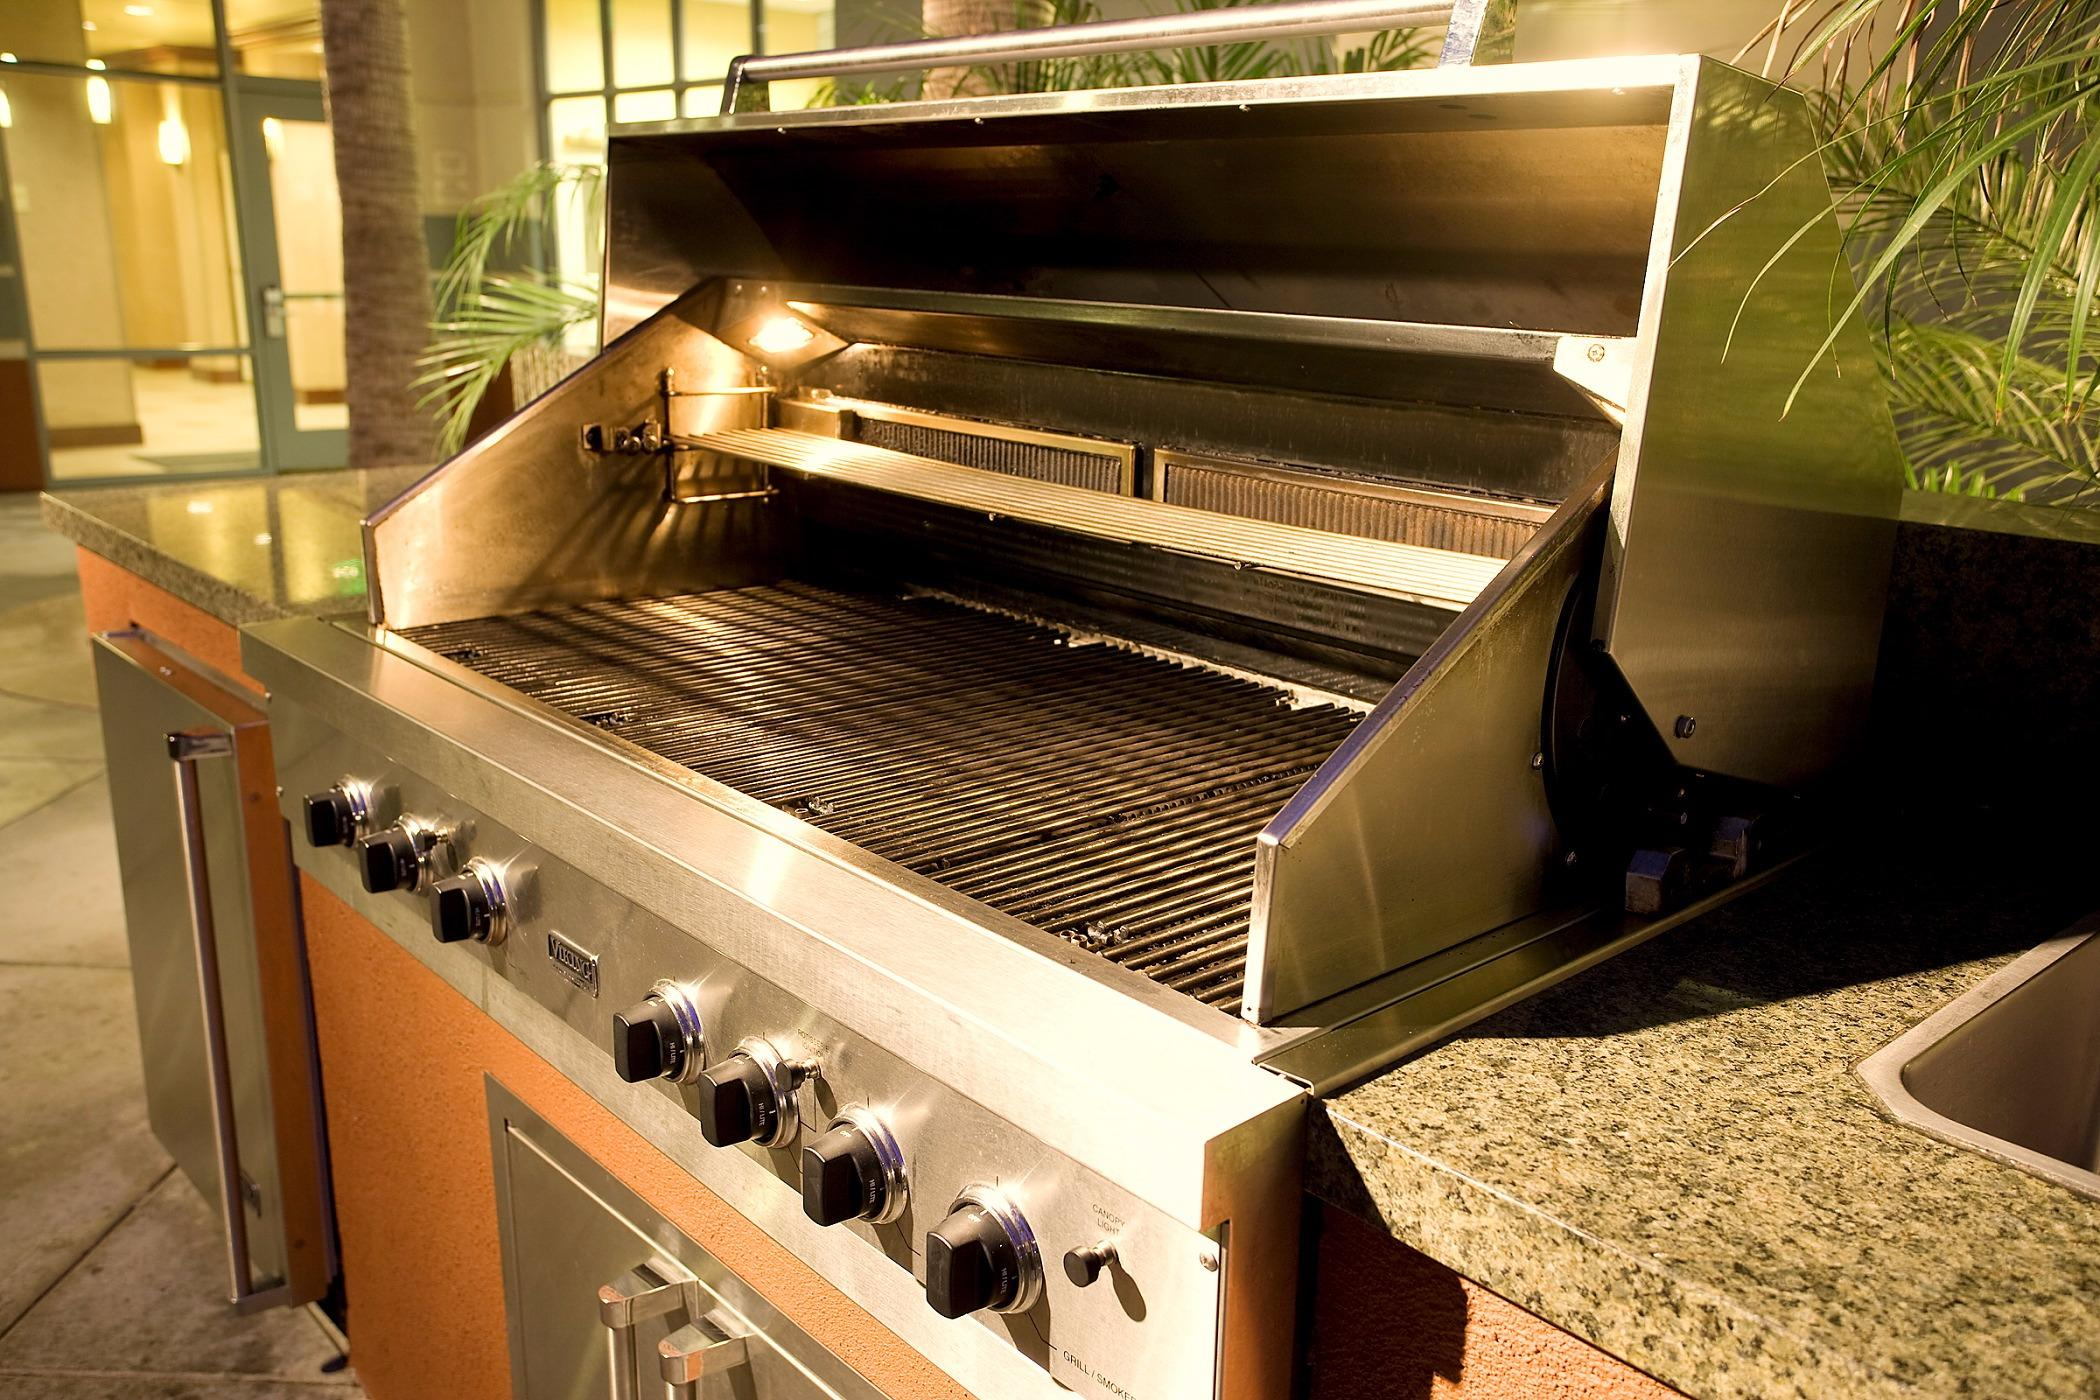 Patio BBQ - Our outdoor grill is available for all guests to use - just like at home!